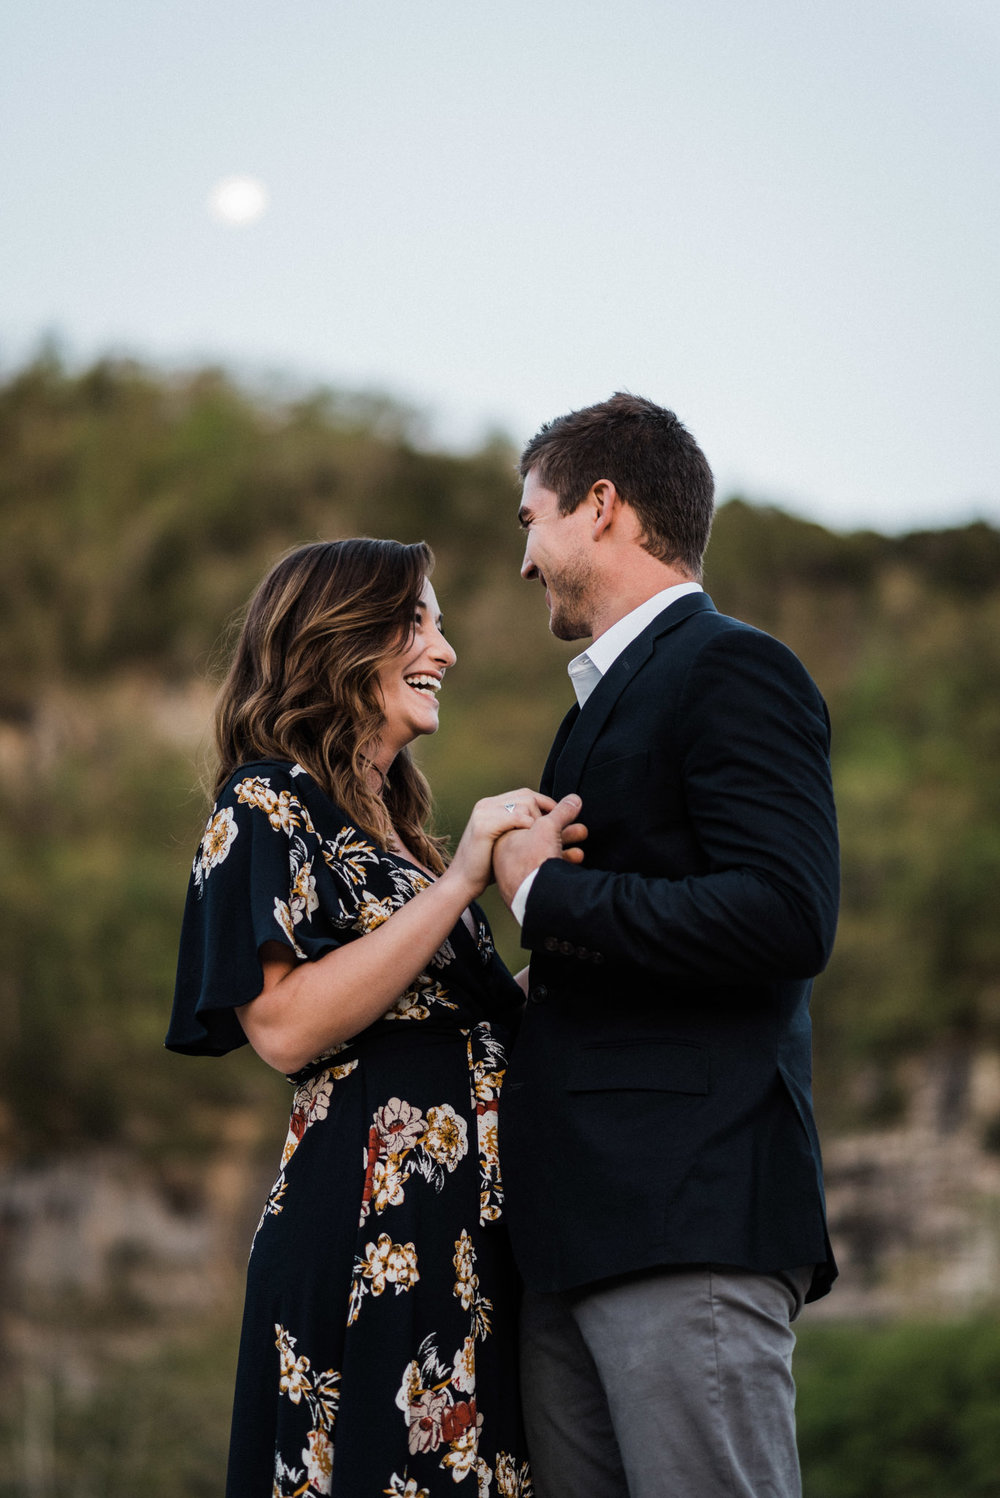 Cara & Kale Engagements at the Buffalo National River - Tanner Burge Photography.jpg